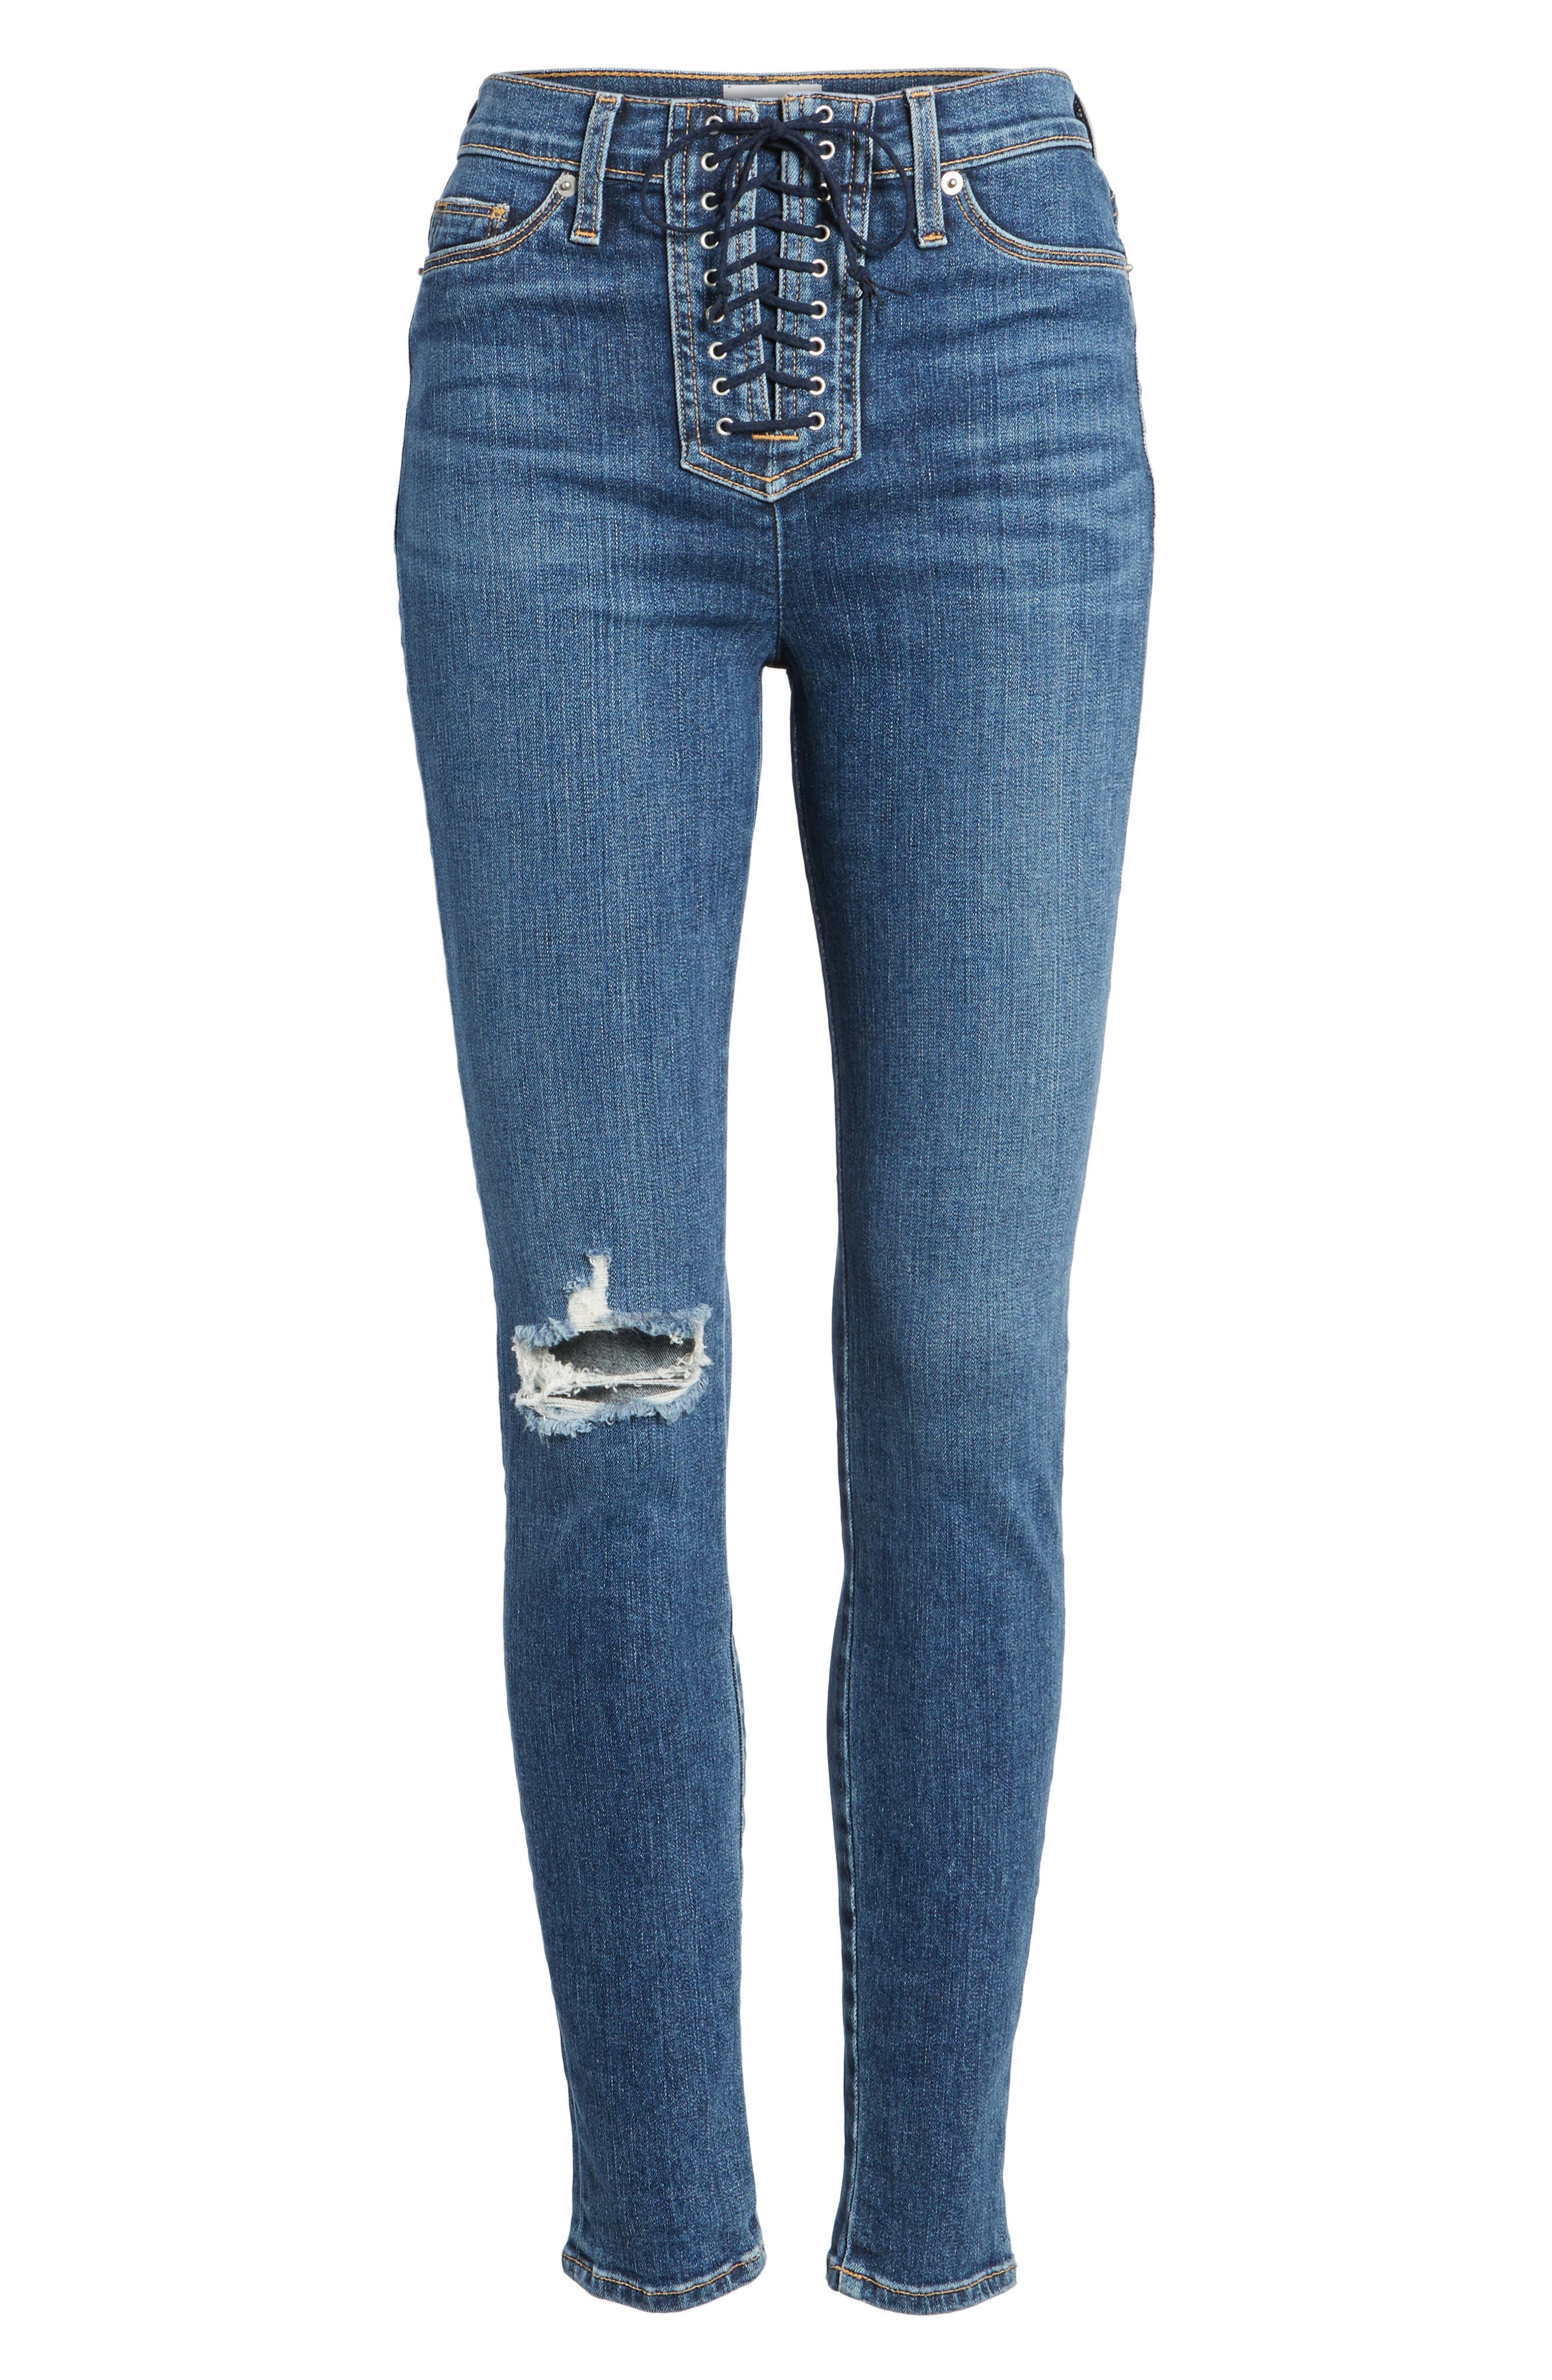 Bullocks Lace-Up High Waist Super Skinny Jeans,                             Alternate thumbnail 7, color,                             421